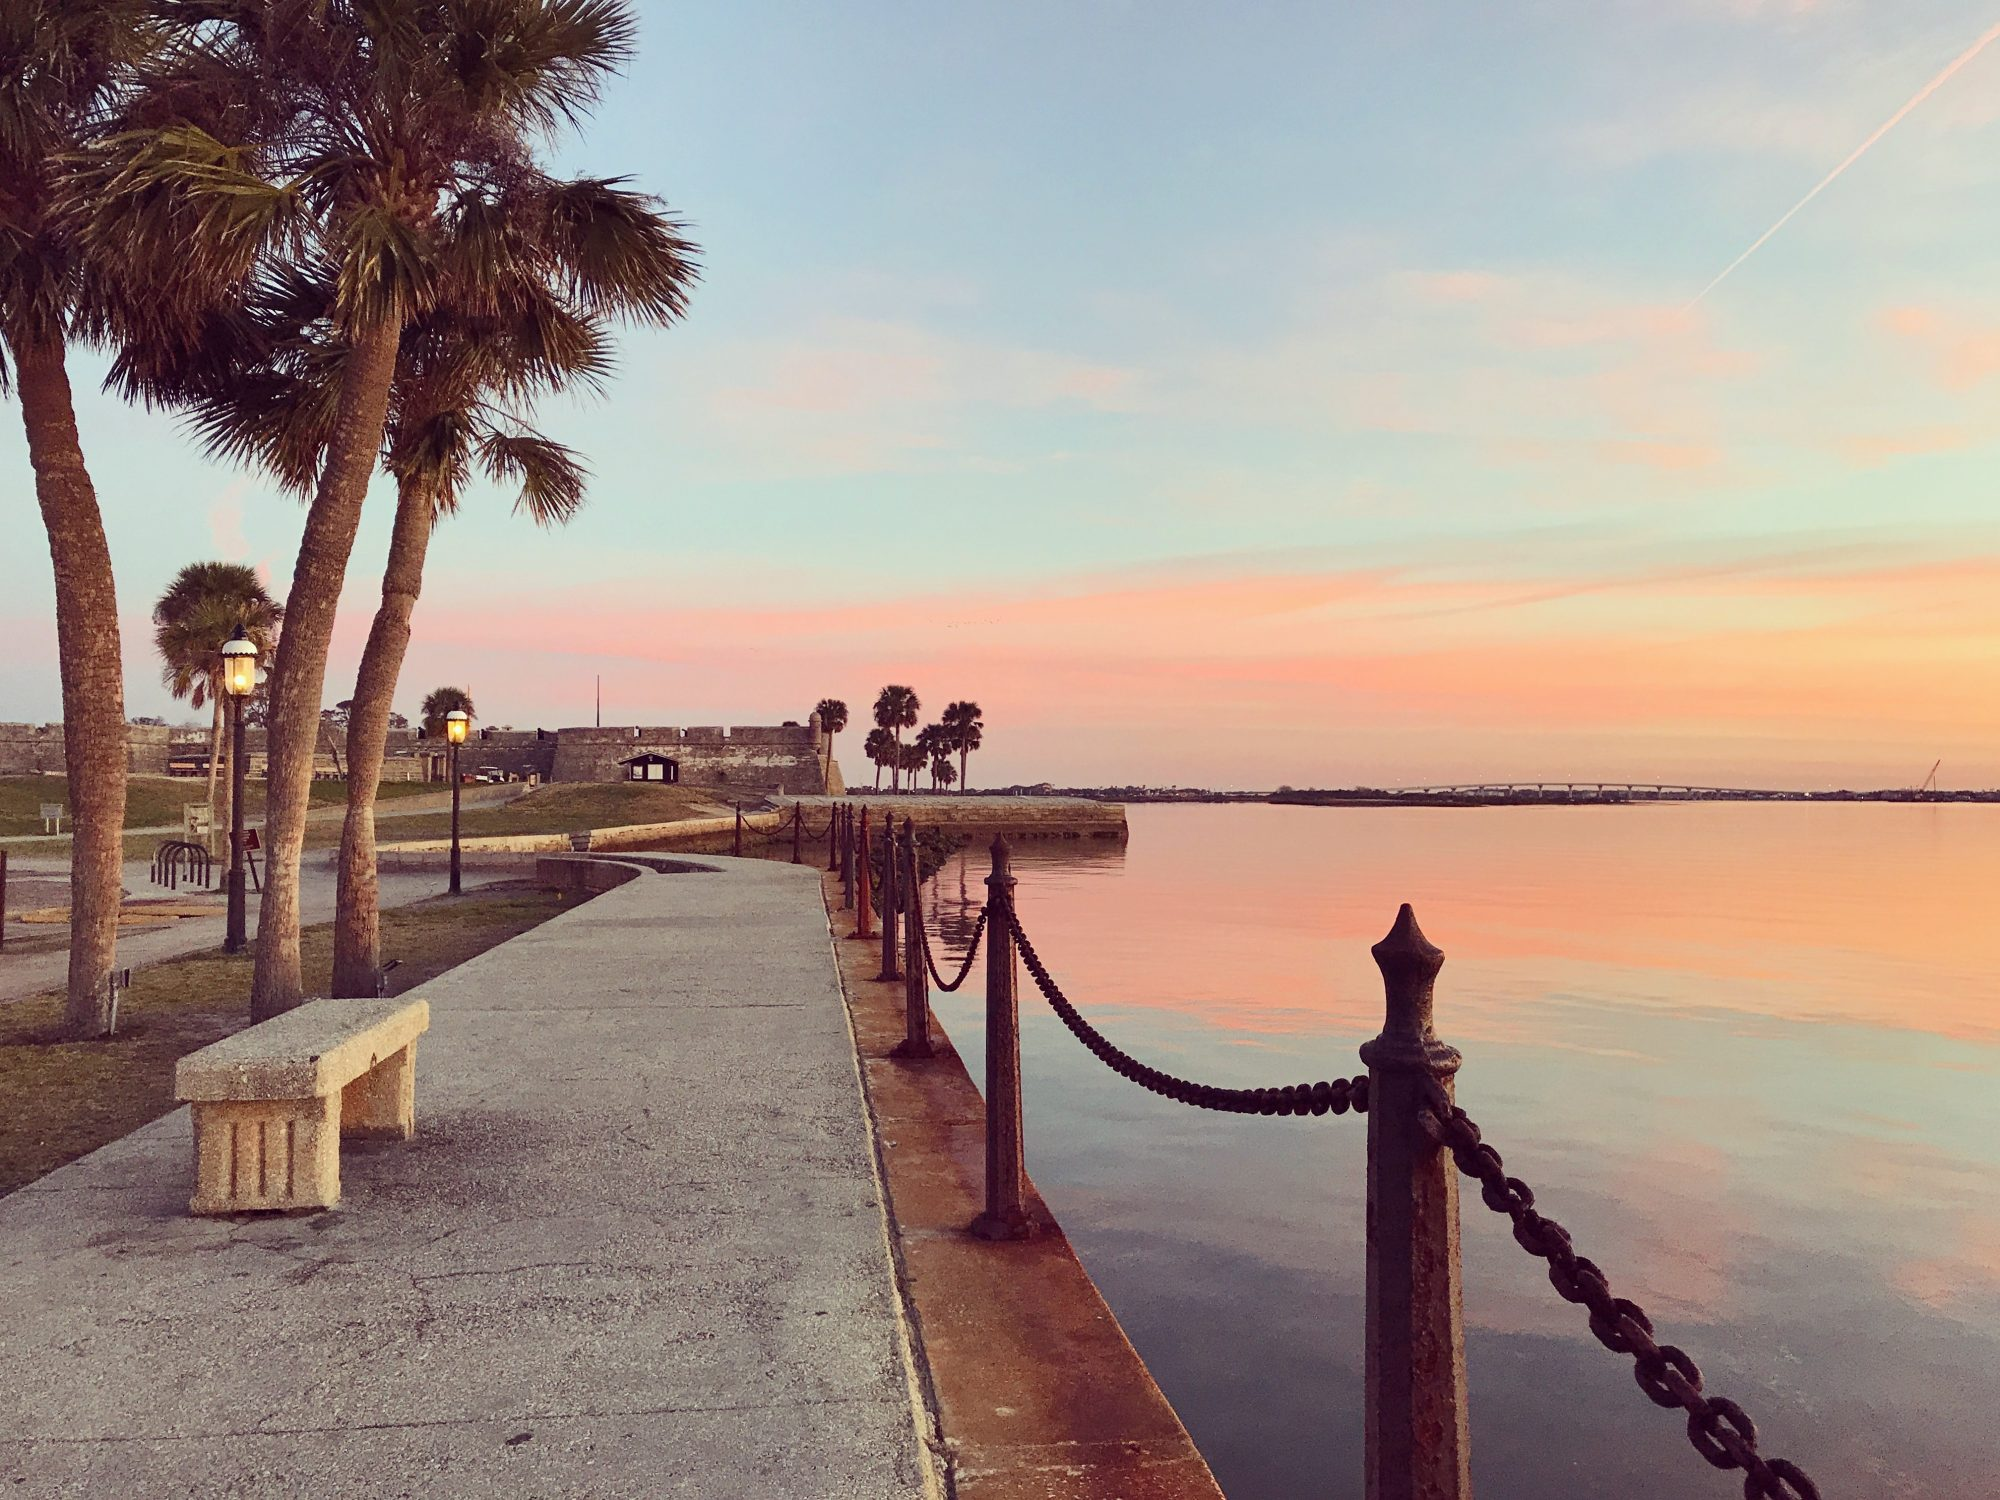 Palm trees and a sidewalk along the water's edge leading to the fort illuminated at dawn in St. Augustine. A beautiful and whimsical sunrise sky over the water. Swirling pink, yellow and orange clouds against a brilliant golden sky. Travel. Nature.